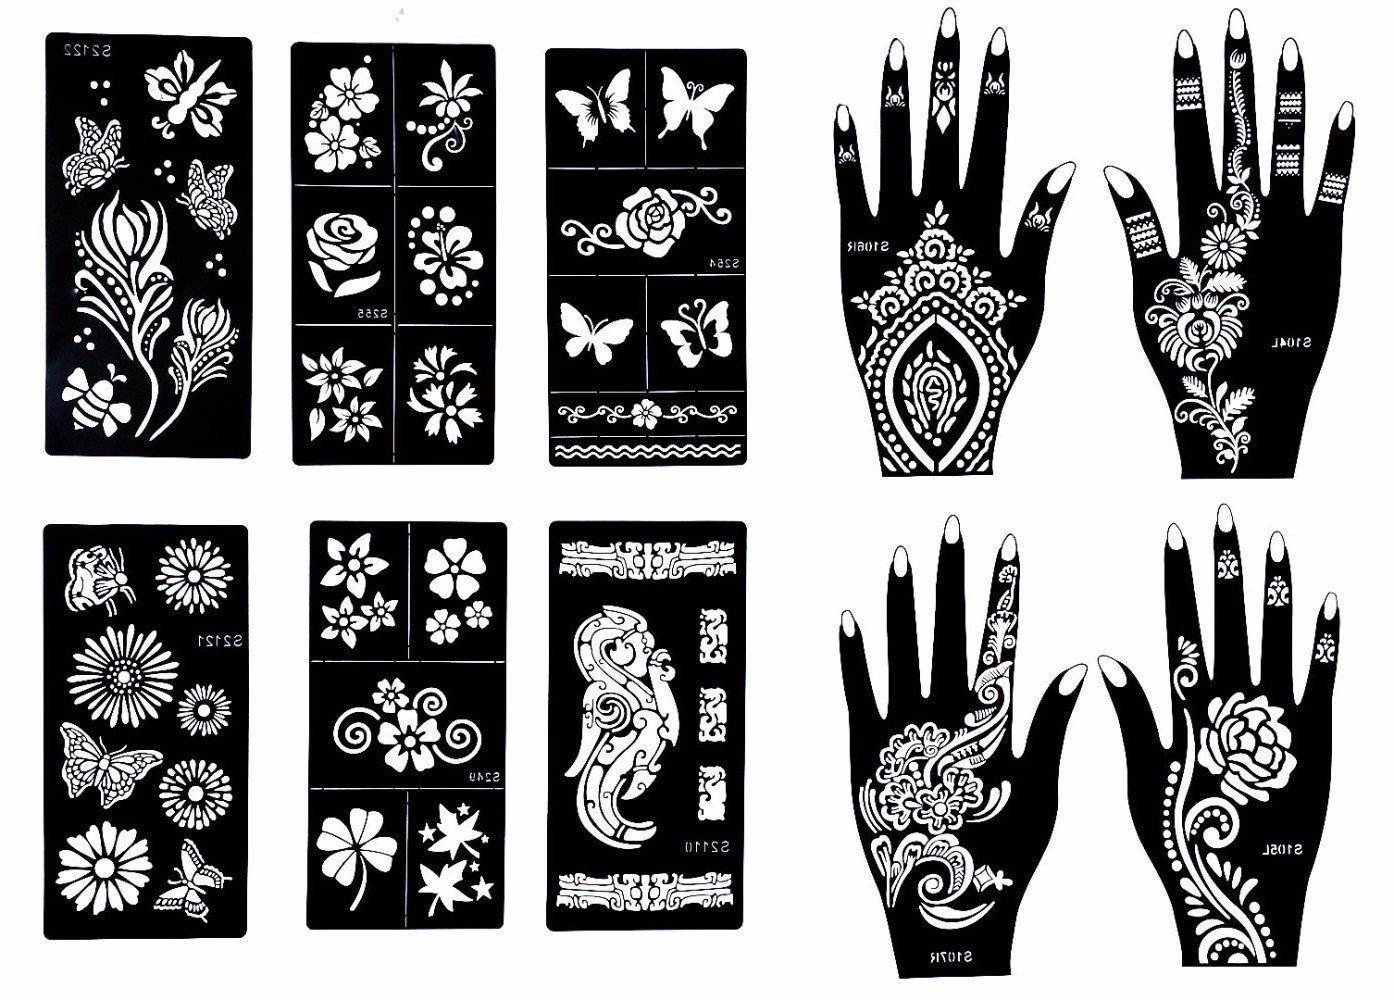 Stencils for Henna Tattoos (10 Sheets) Self-Adhesive Beautiful Body Art Temporary Tattoo Templates, Henna, Flower, Butterfly Designs Nanjari Logistics Solutions